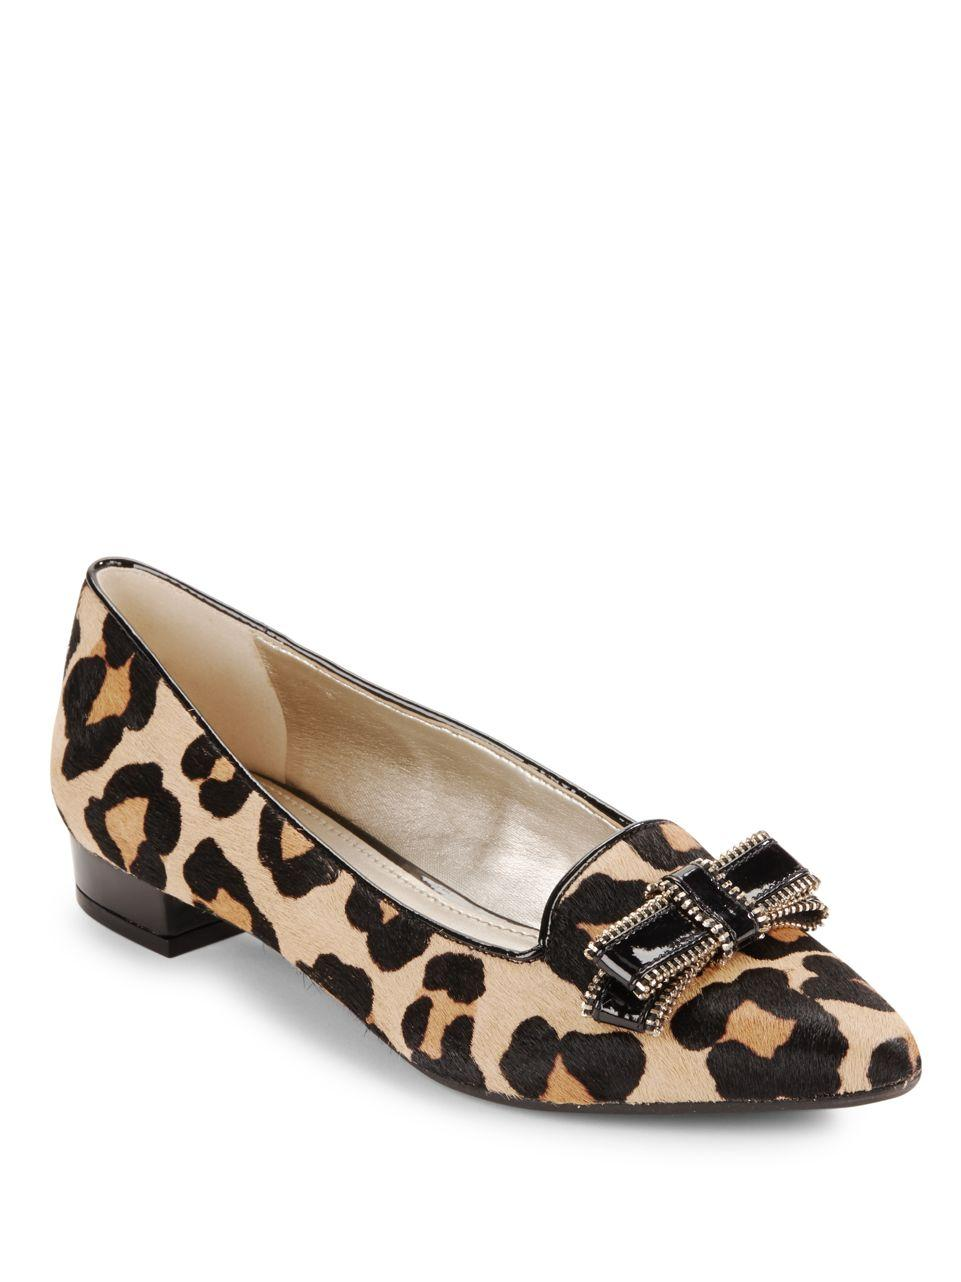 Miss Albright Shoes Flats